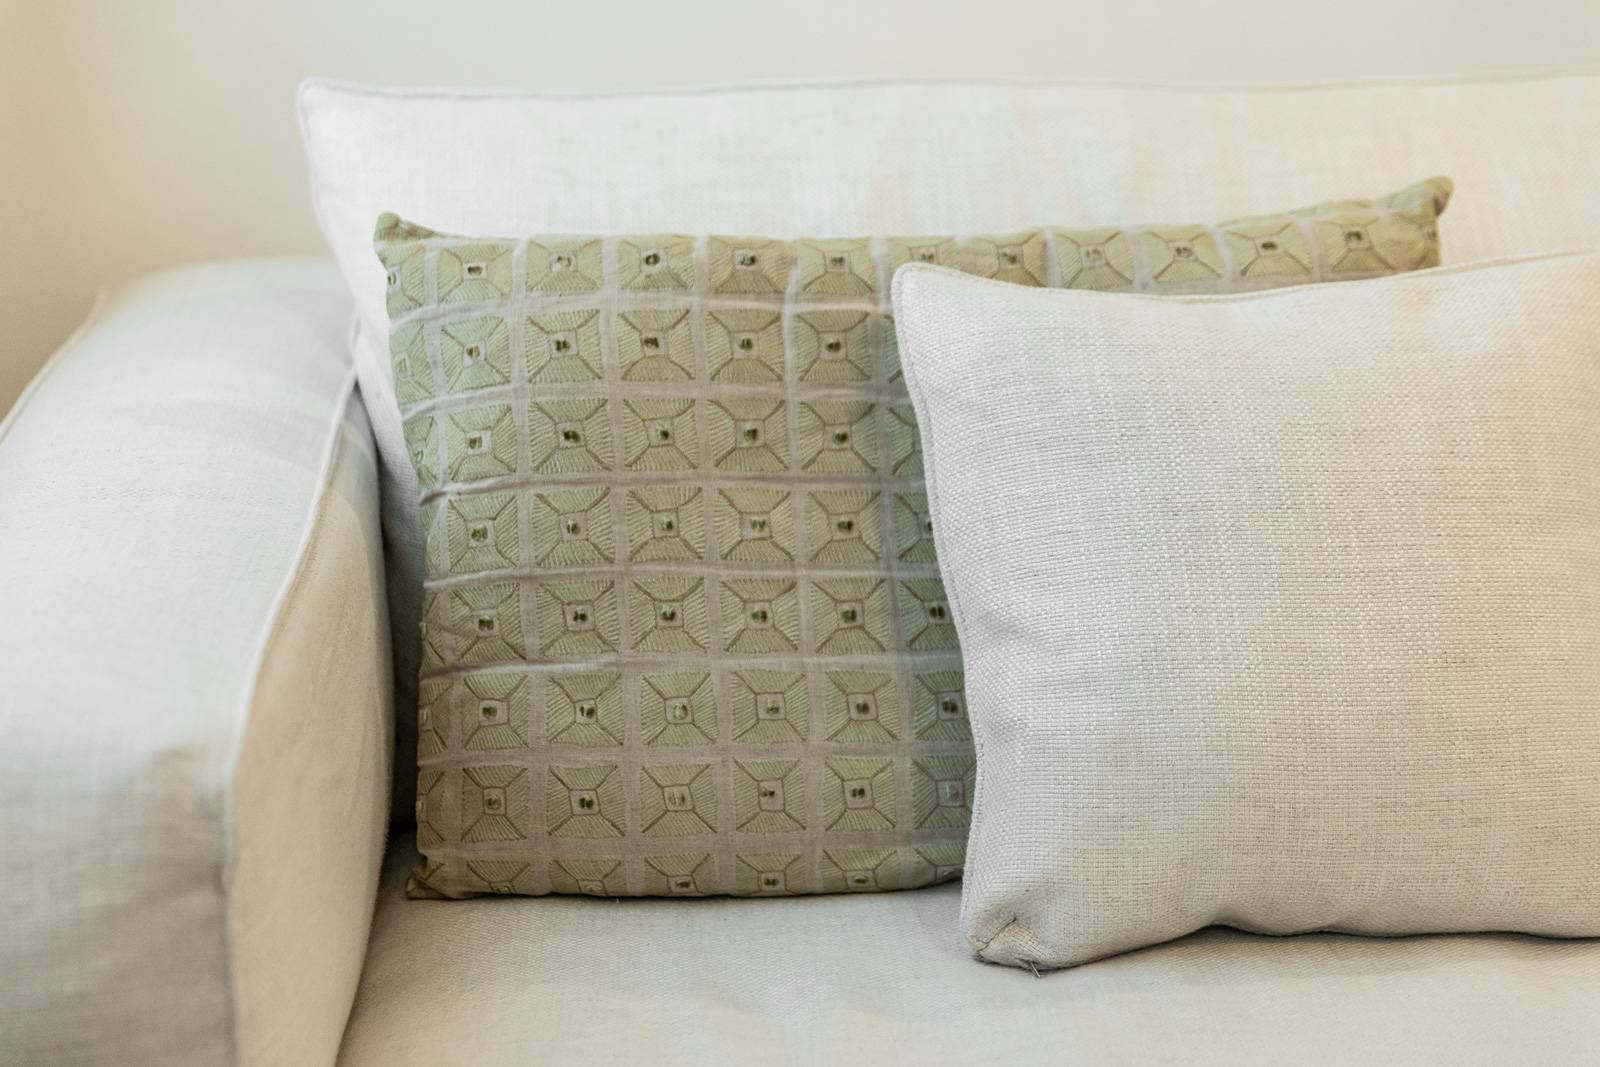 refined fabrics have been used for the interior design